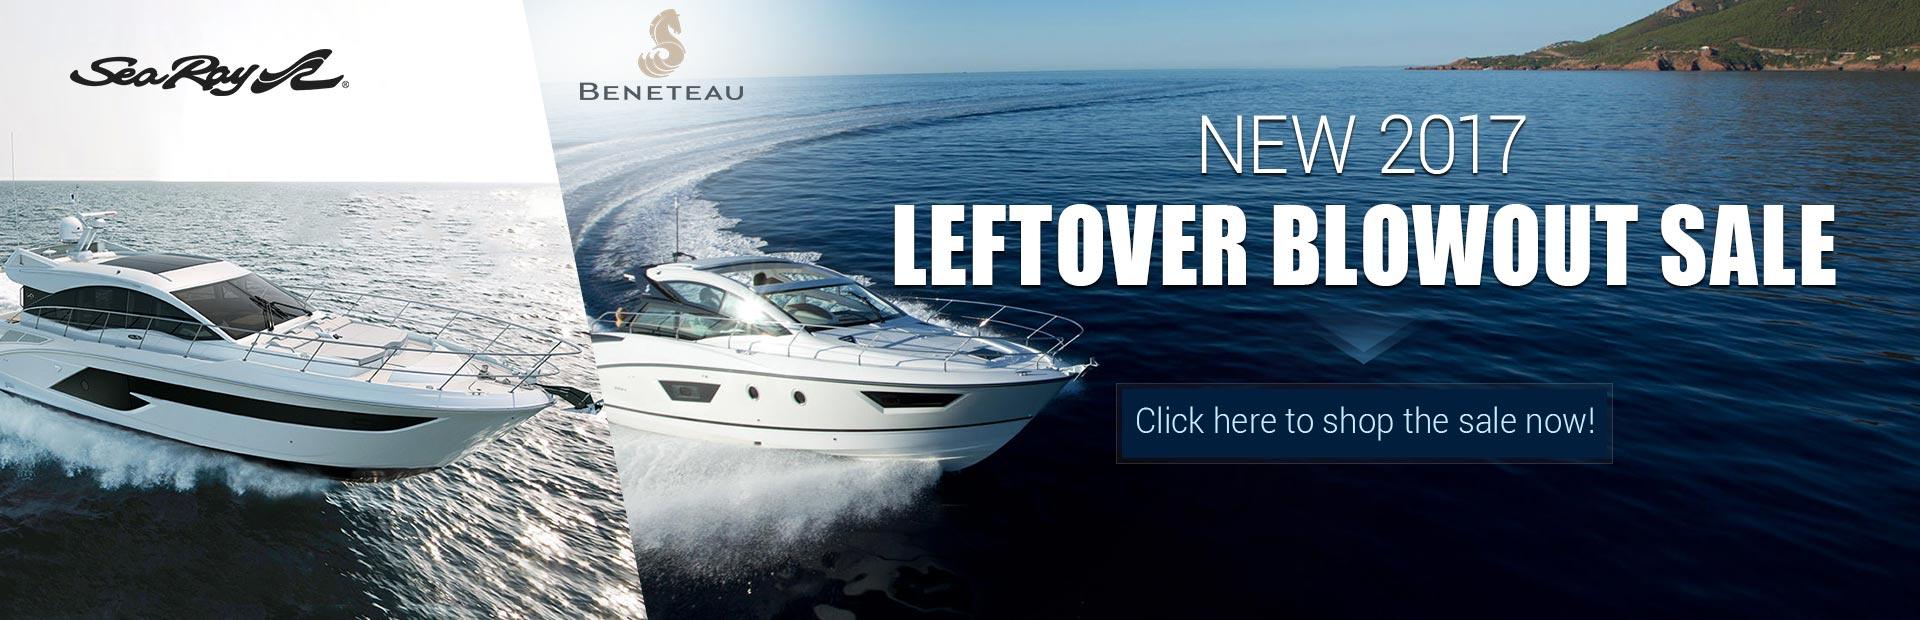 Leftover blowout sale on NEW 2017 Sea Ray and Beneteau units. Click here to shop the sale now!